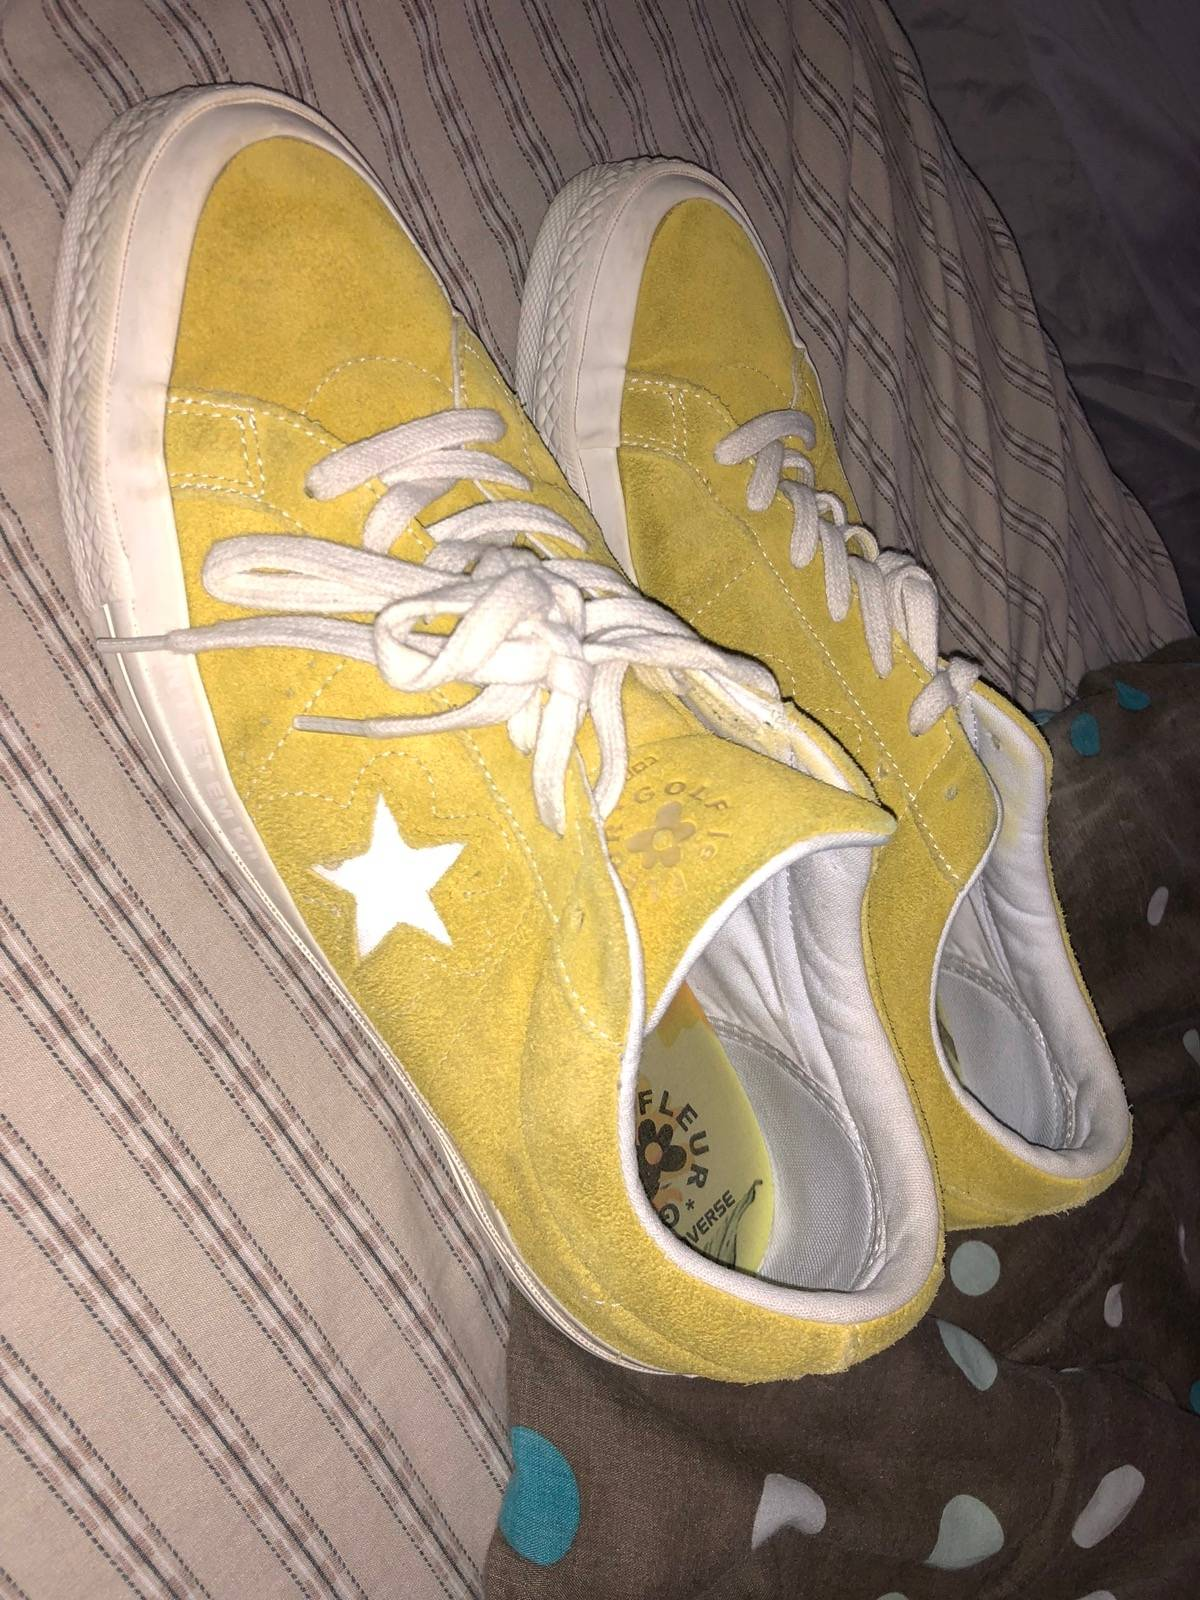 """d84677464fc5 Converse Golf Le Fleur x One Star Ox """"Sulphur Yellow"""" Size 11 - Low-Top  Sneakers for Sale - Grailed"""